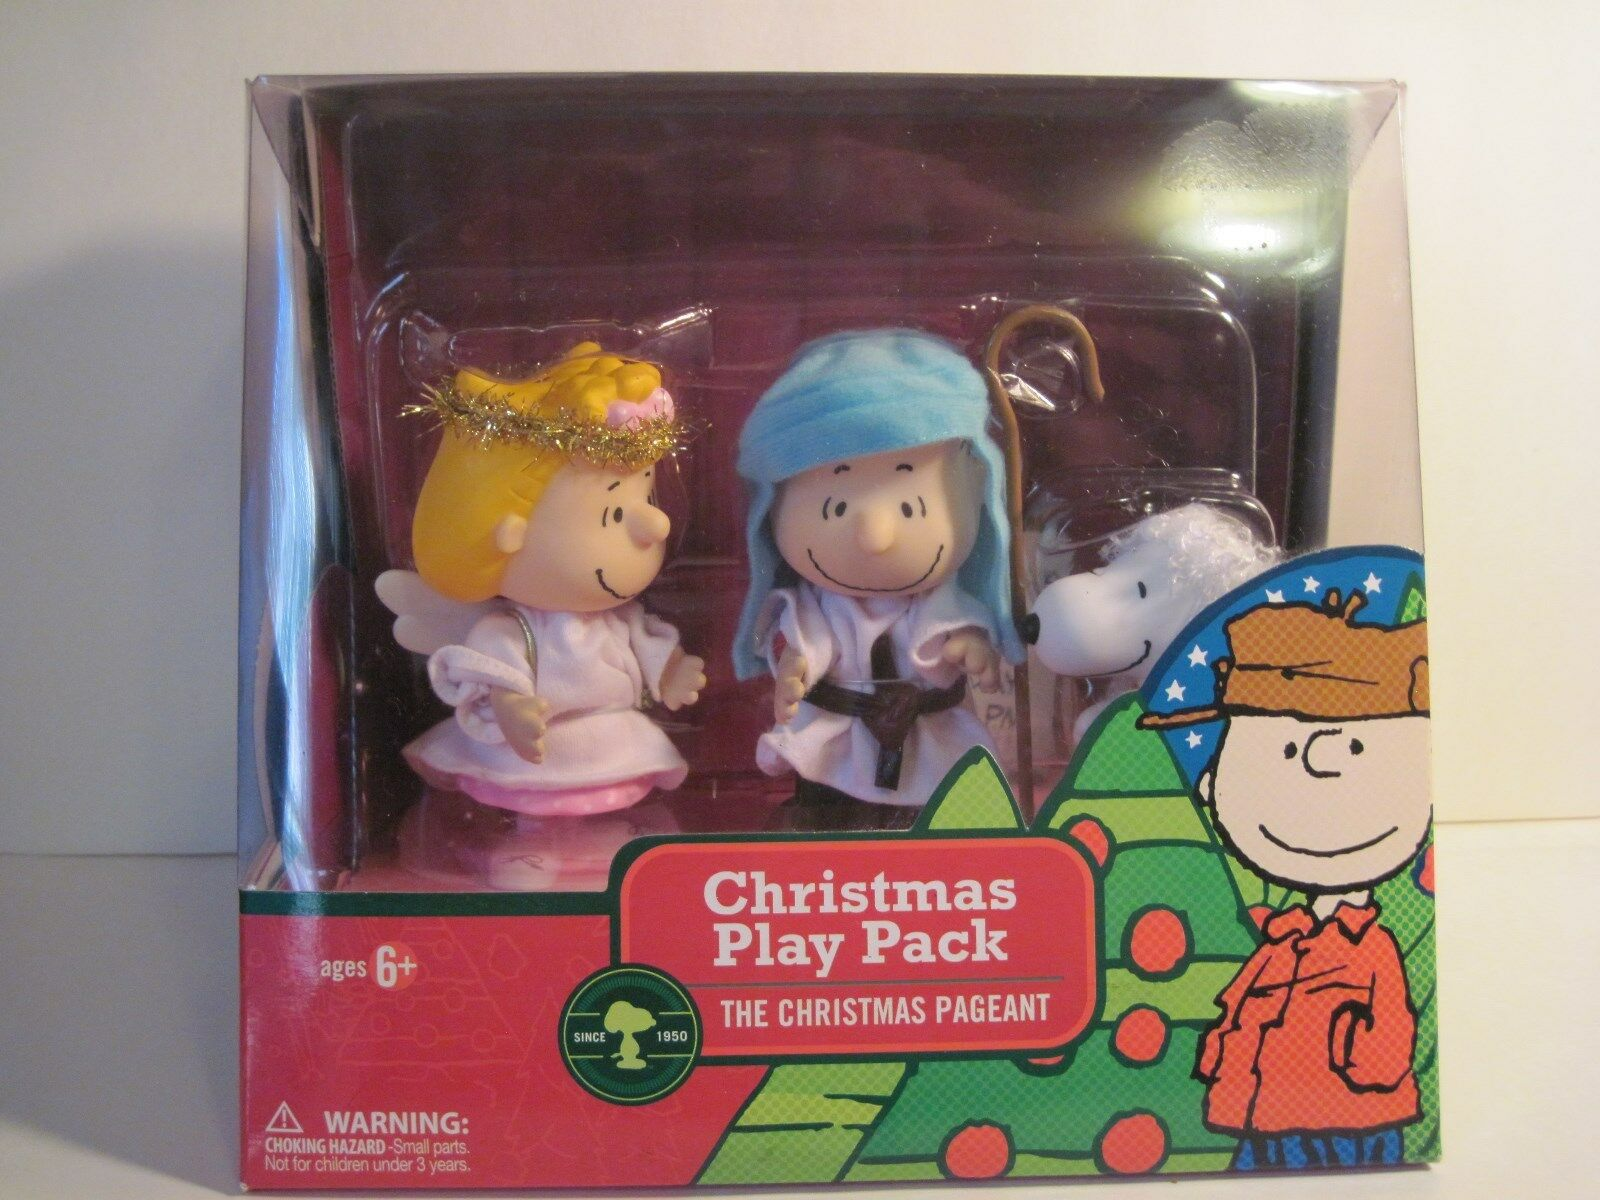 A CHARLIE CHARLIE CHARLIE BROWN CHRISTMAS DELUXE FIGURE ab0a0f